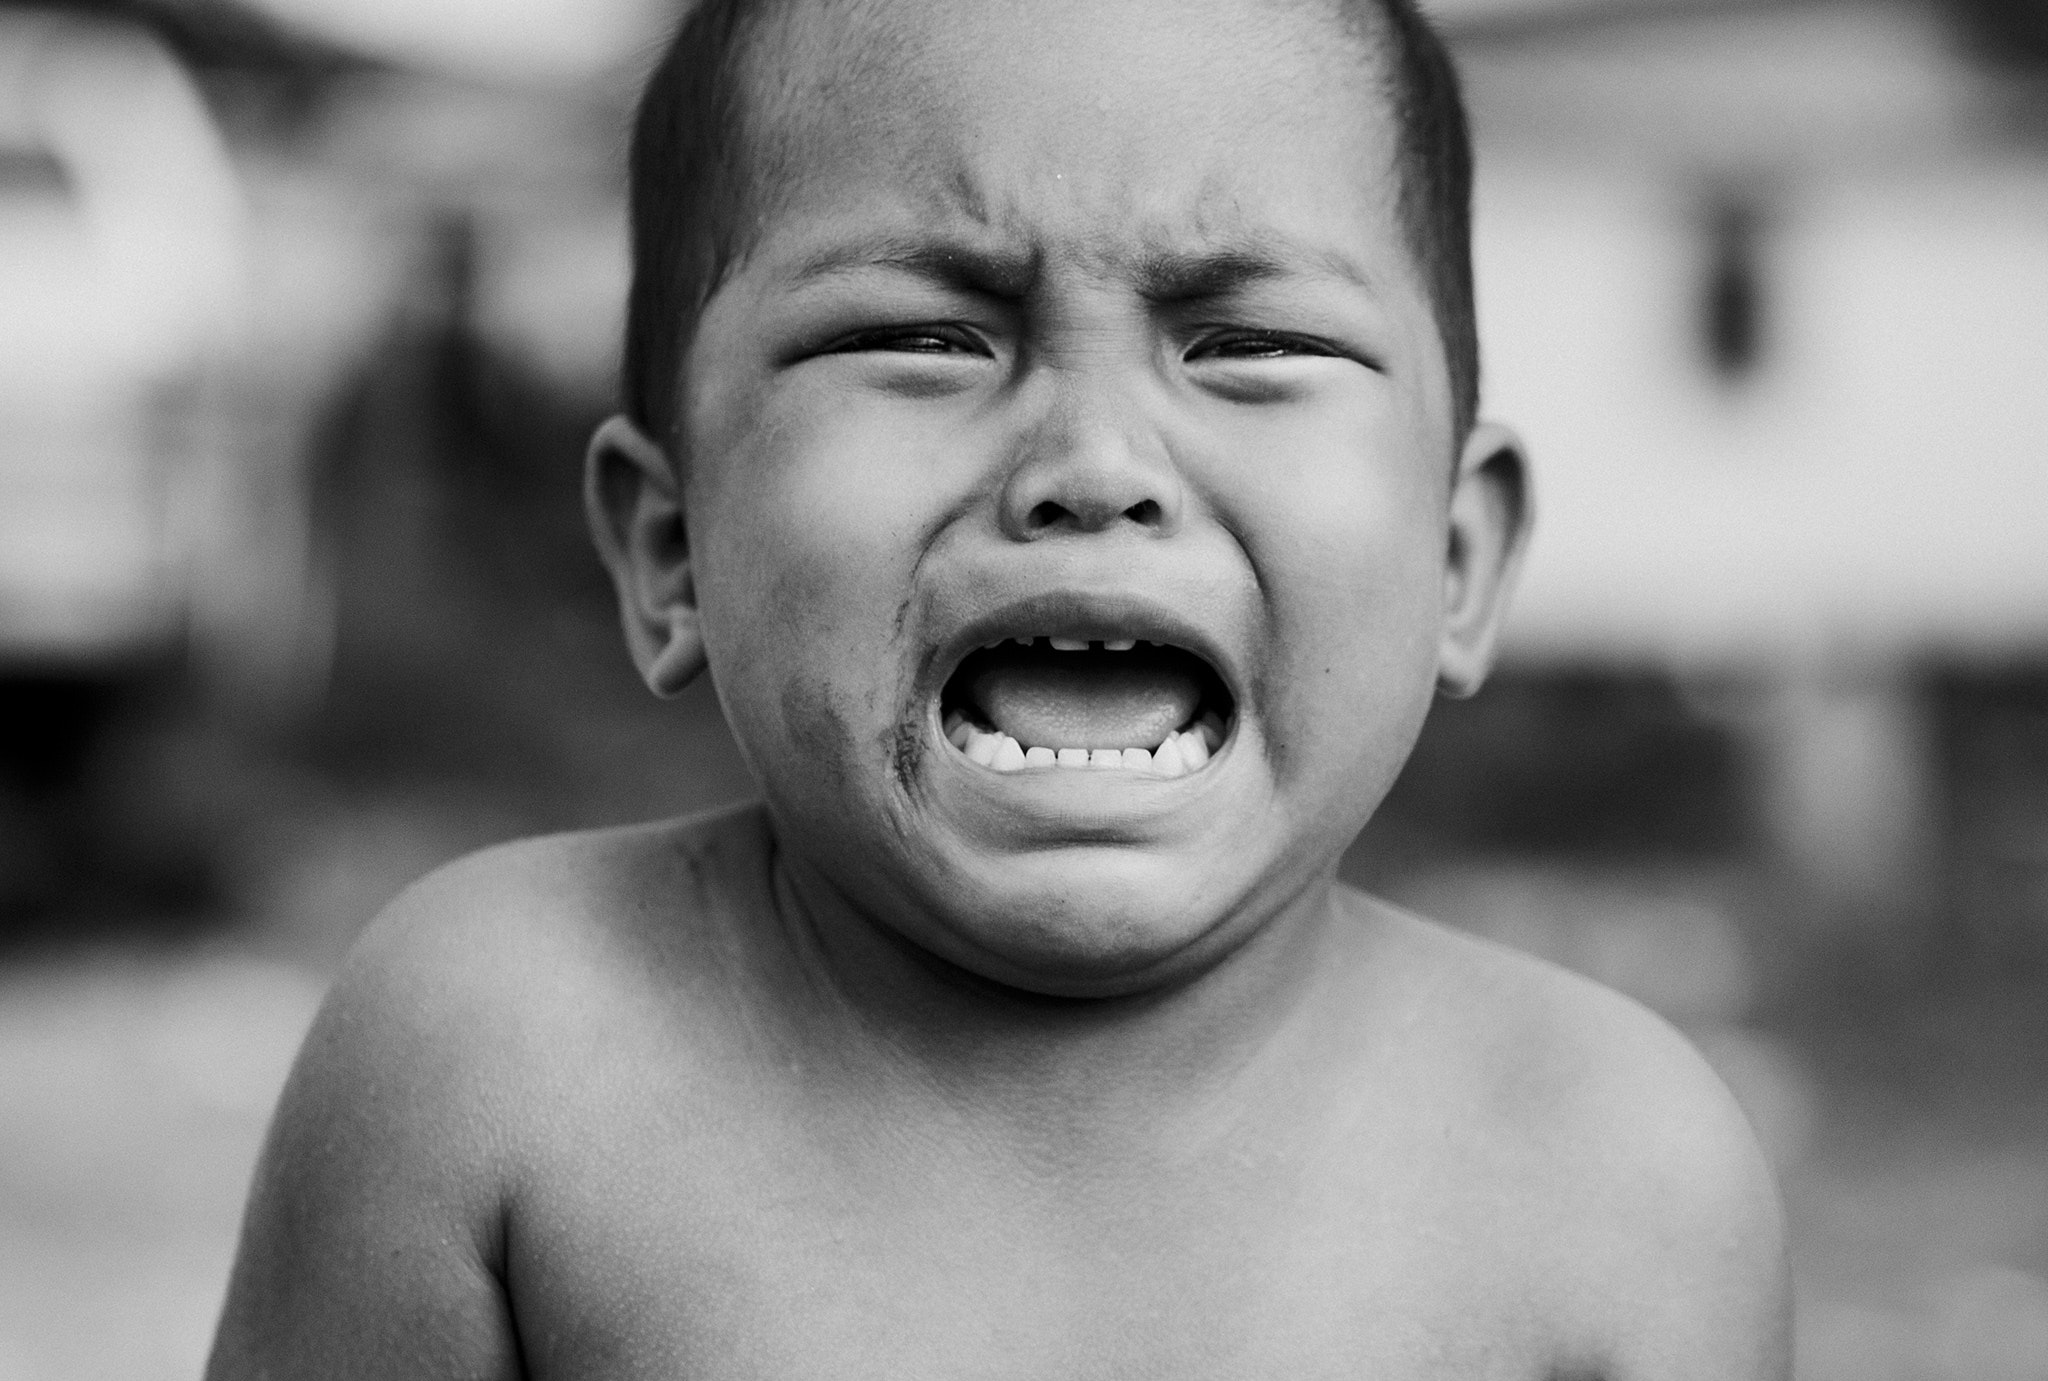 Gray scale photo of crying topless boy